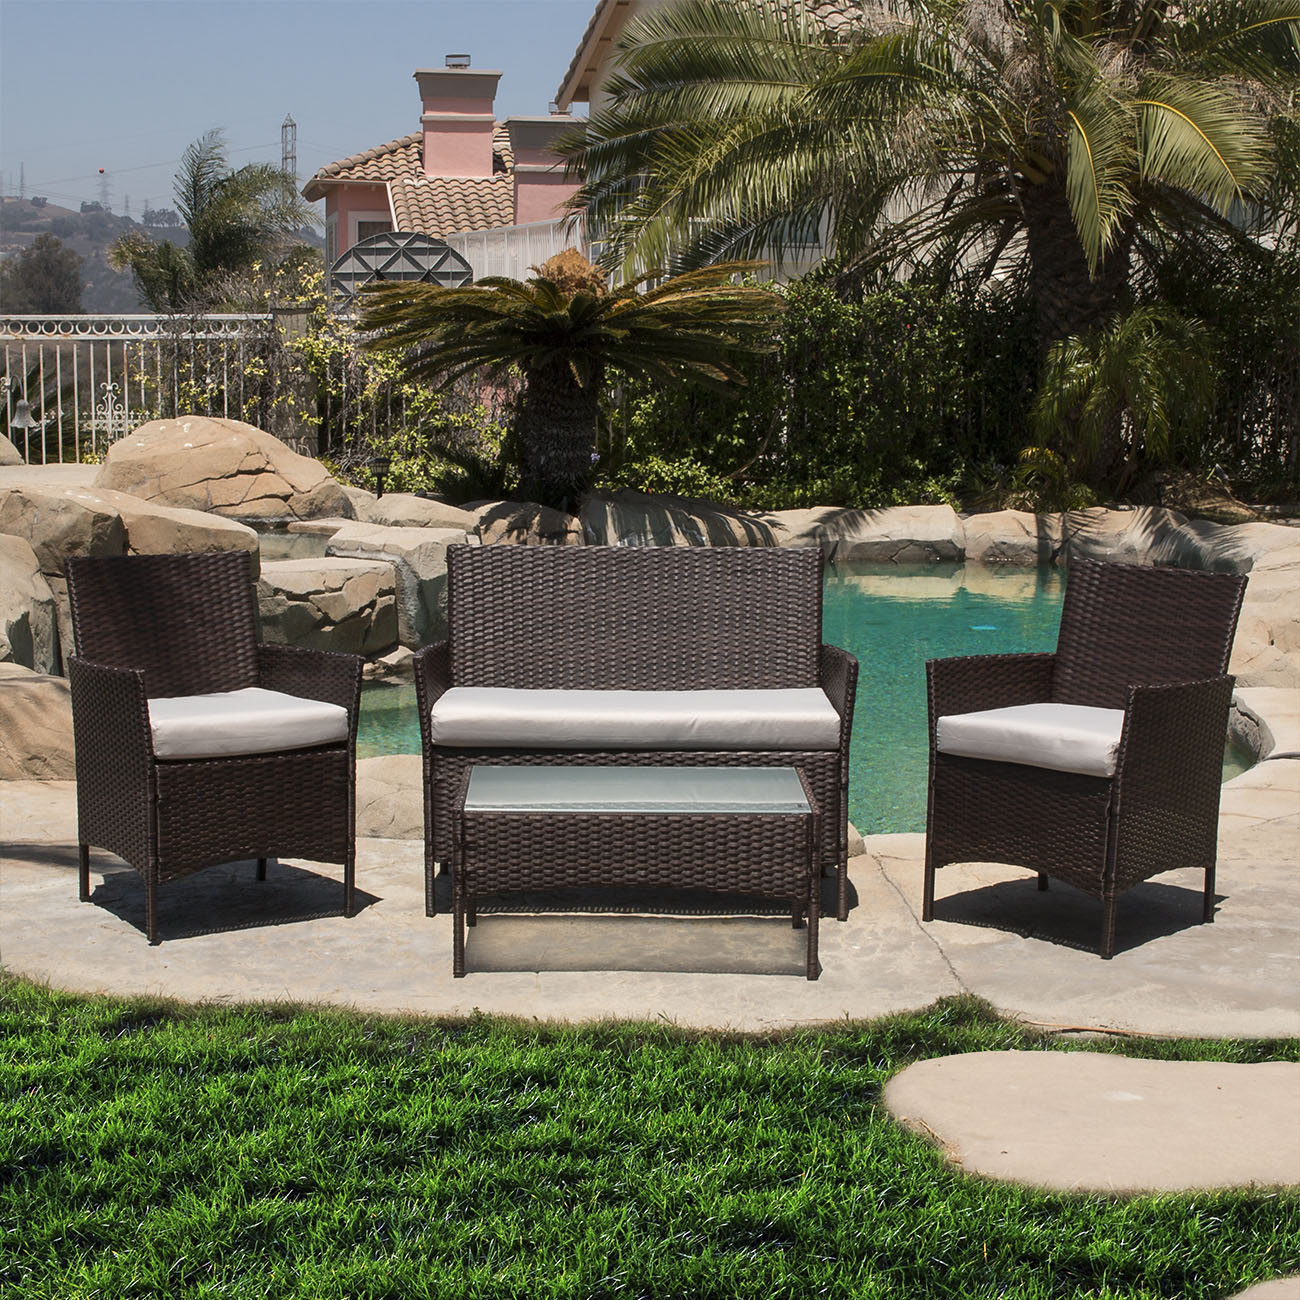 4 pc rattan furniture set outdoor patio garden sectional for Rattan outdoor furniture